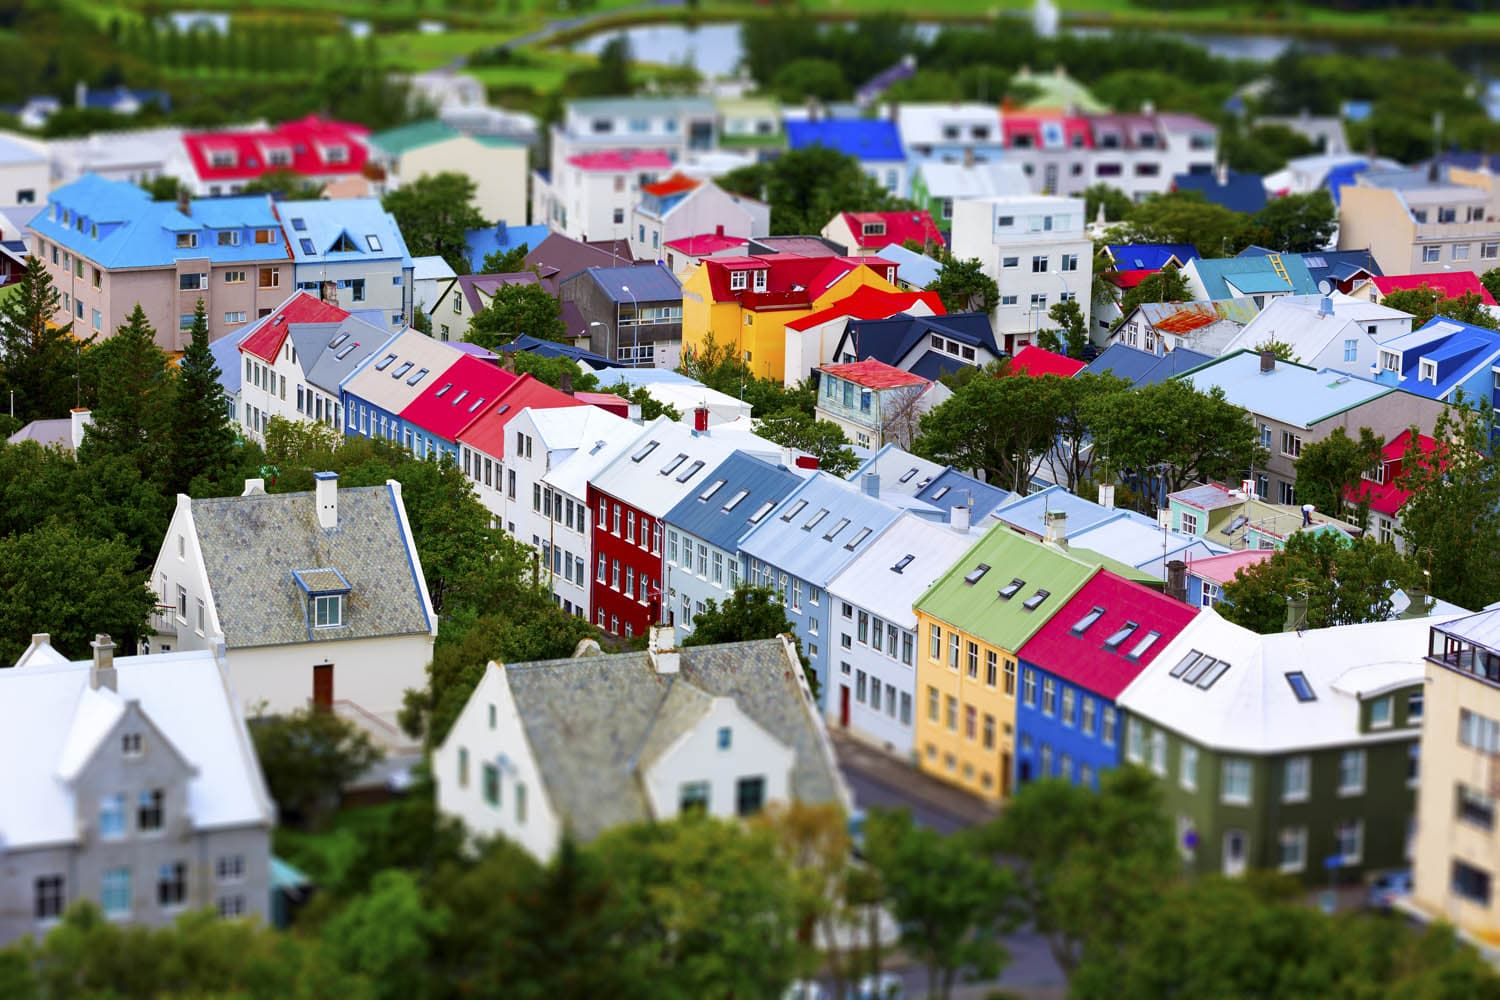 View of the colorful houses of Reykjavik in the summertime